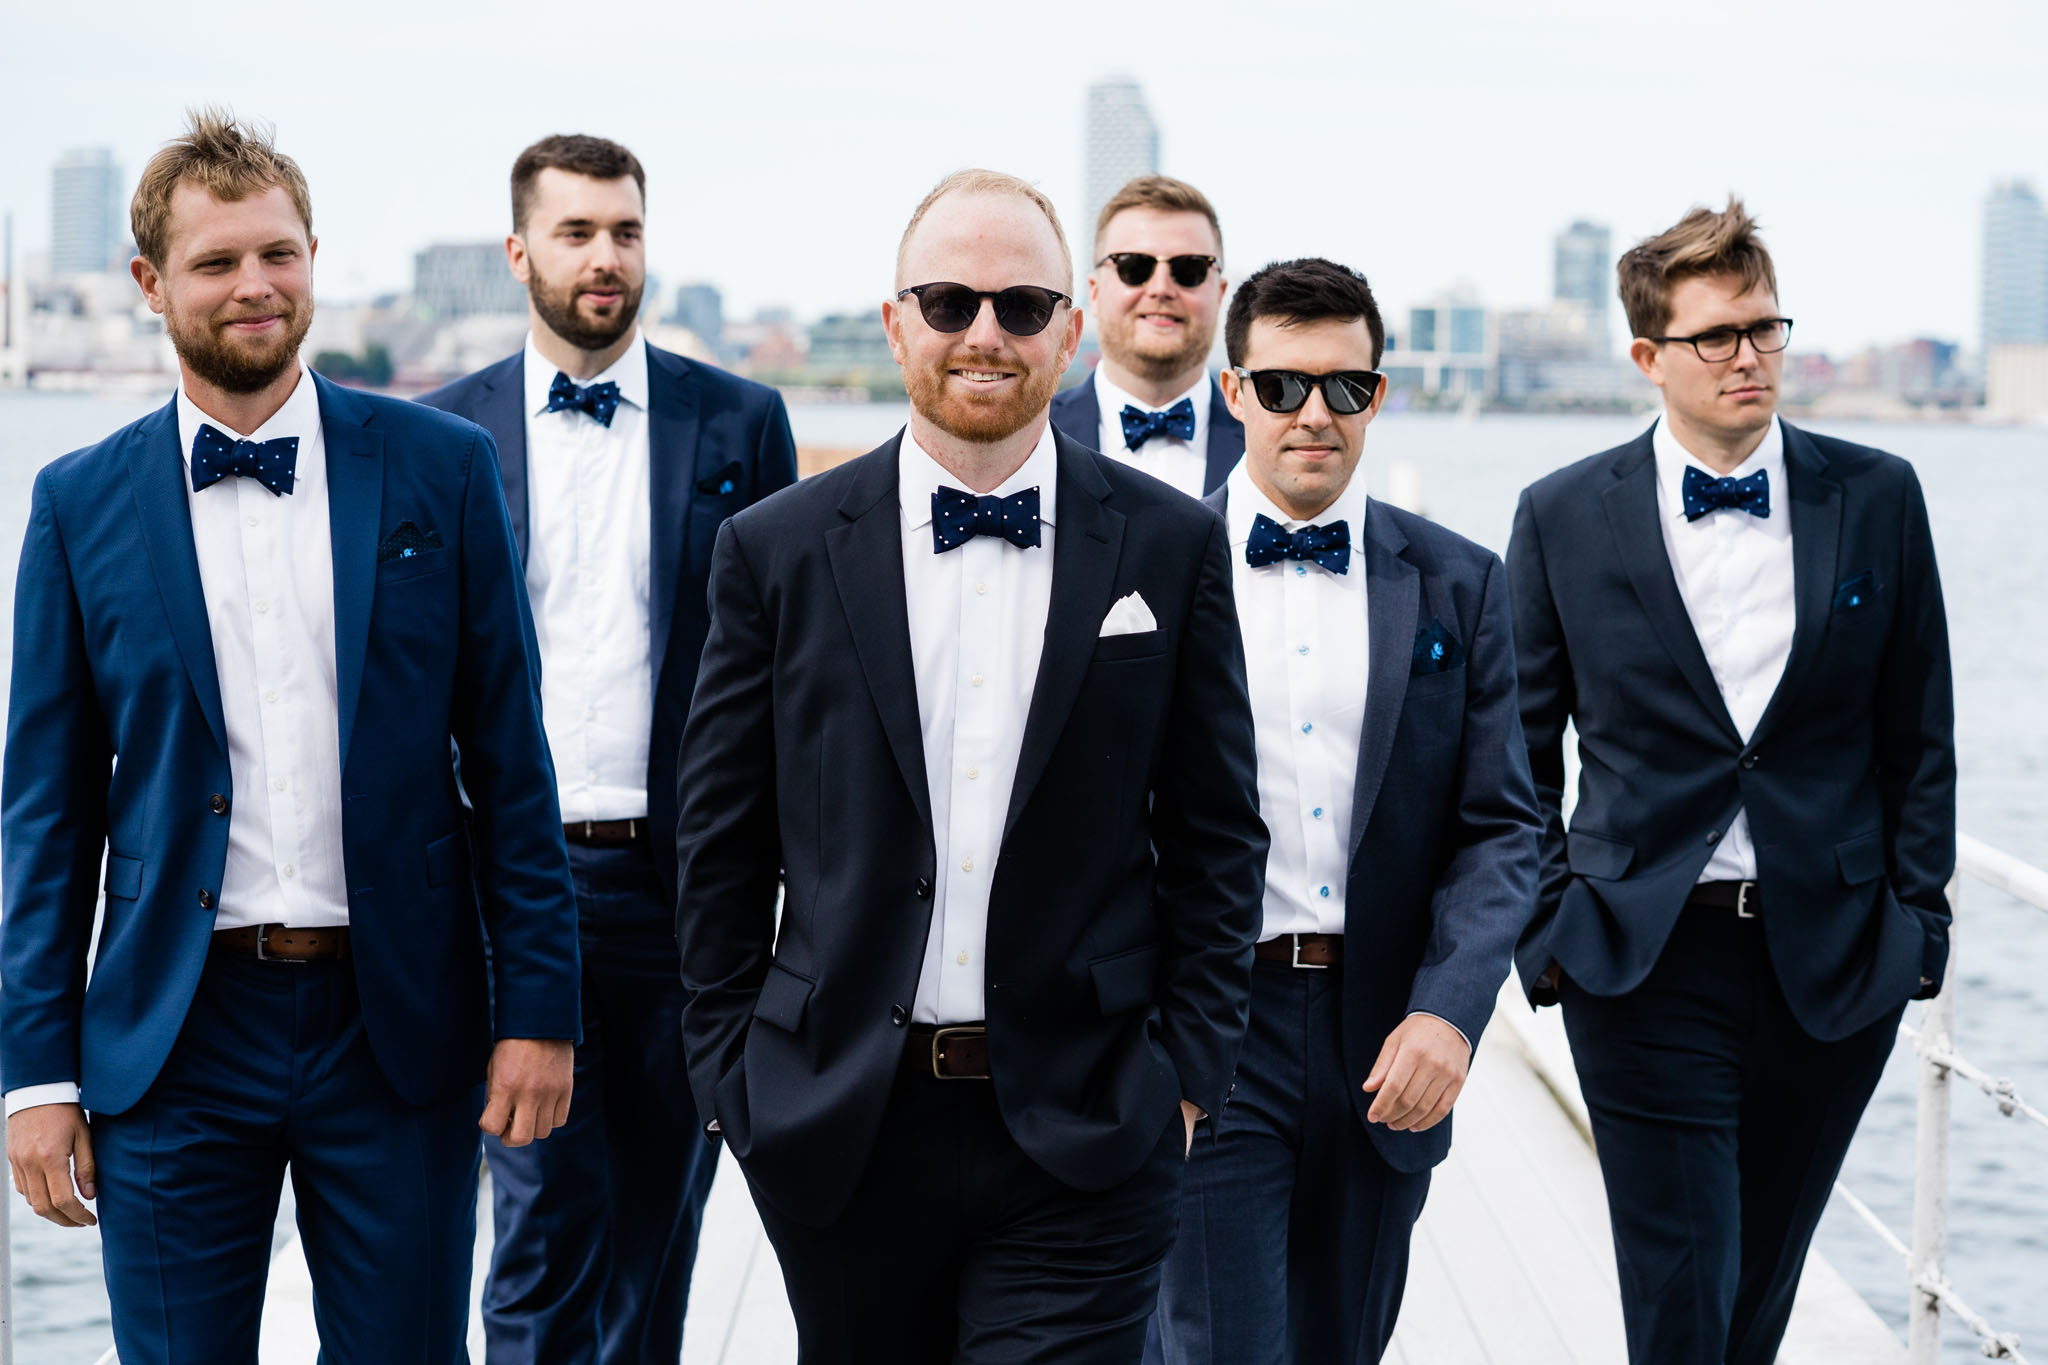 The groomsmen looking cool like Risky Business!